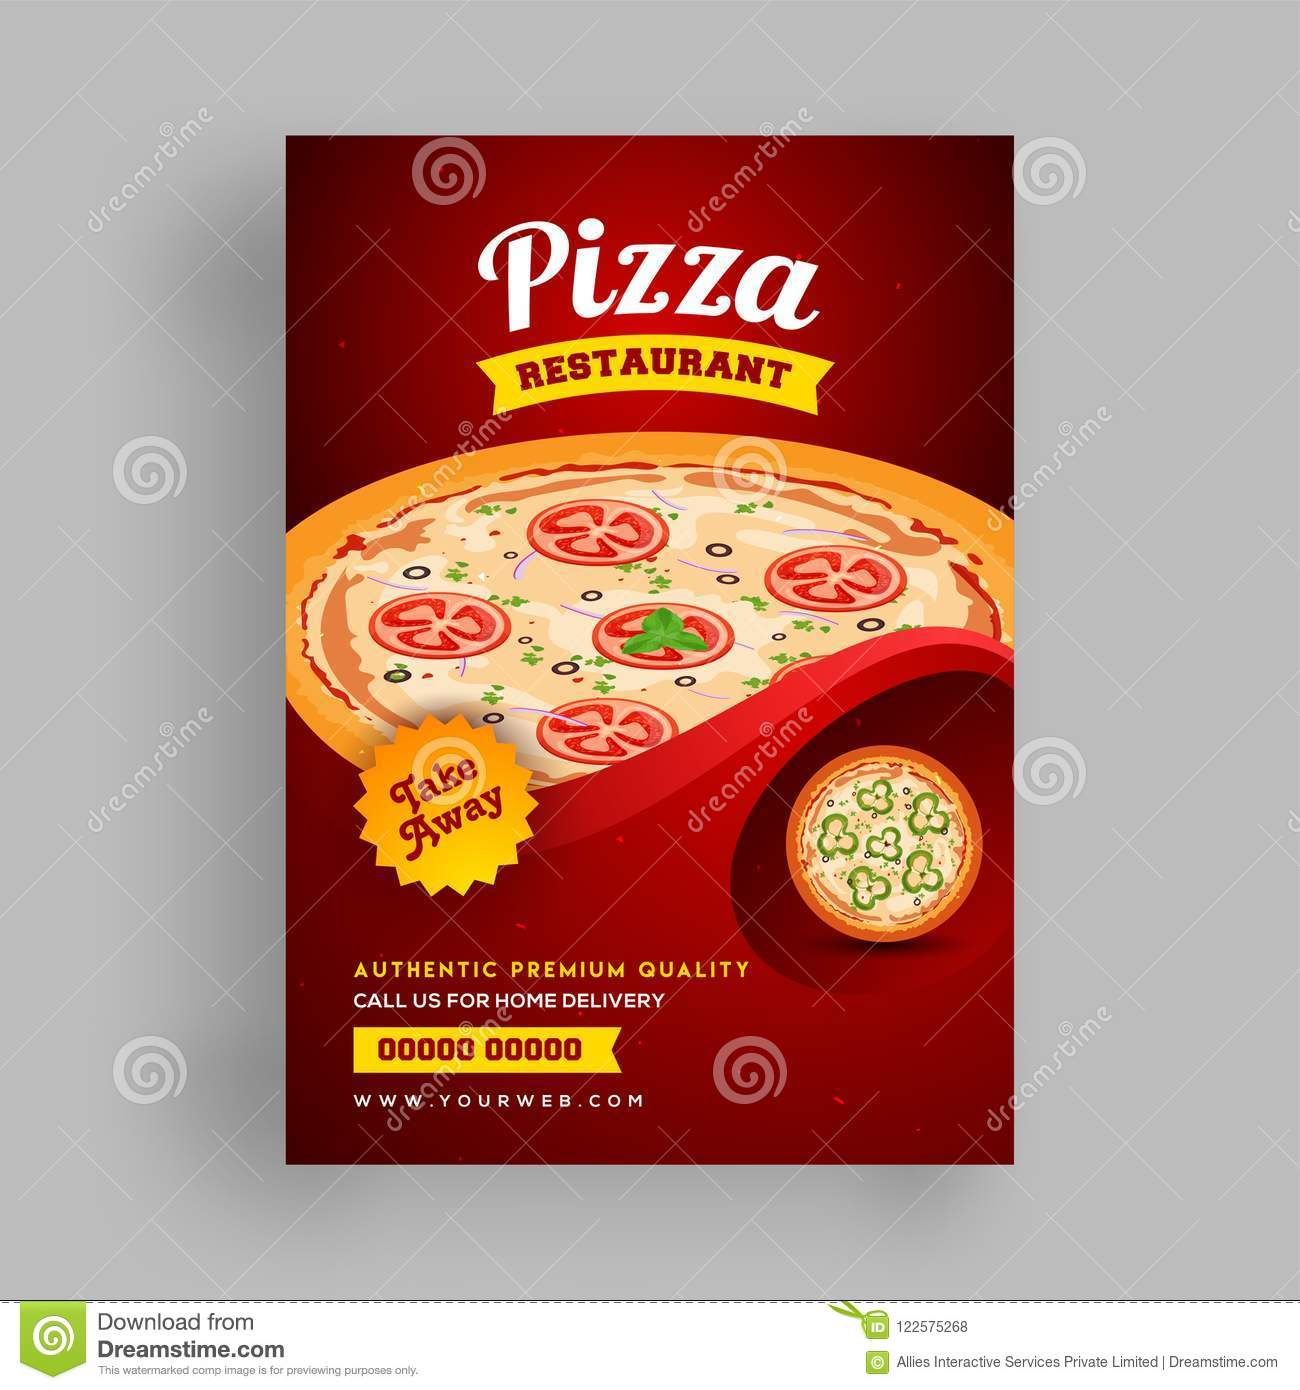 pizza restaurant flyer or template design for food corners stock